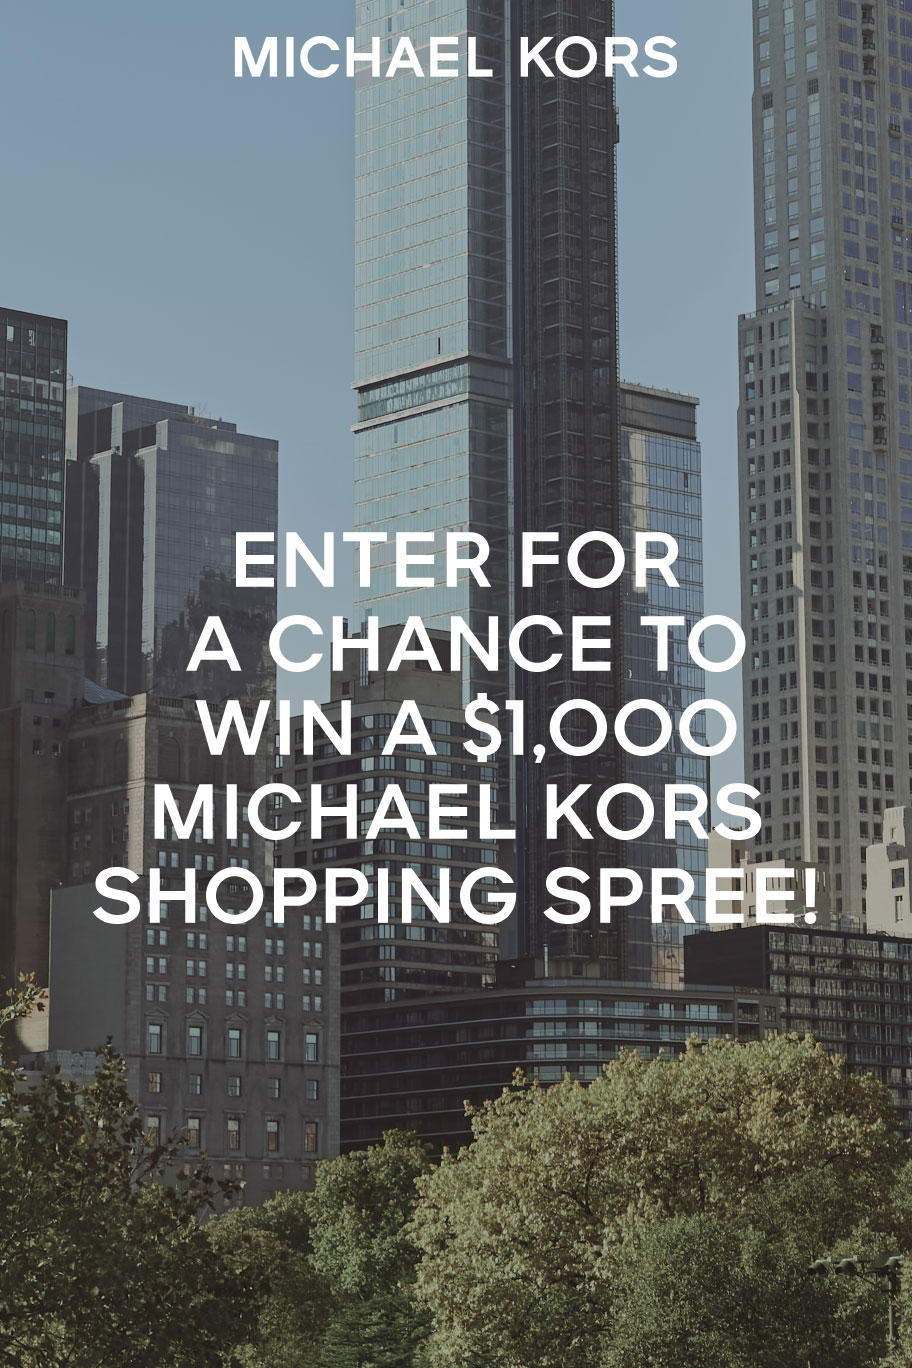 SPRING REFRESH. ENTER FOR A CHANCE TO WIN A $1,000 MICHAEL KORS SHOPPING SPREE! We're celebrating spring by giving two lucky individuals the chance to win a $1,000 Michael Kors gift card. Plus, 15 lucky runners-up will each receive either a $300 or a $100 Michael Kors gift card.